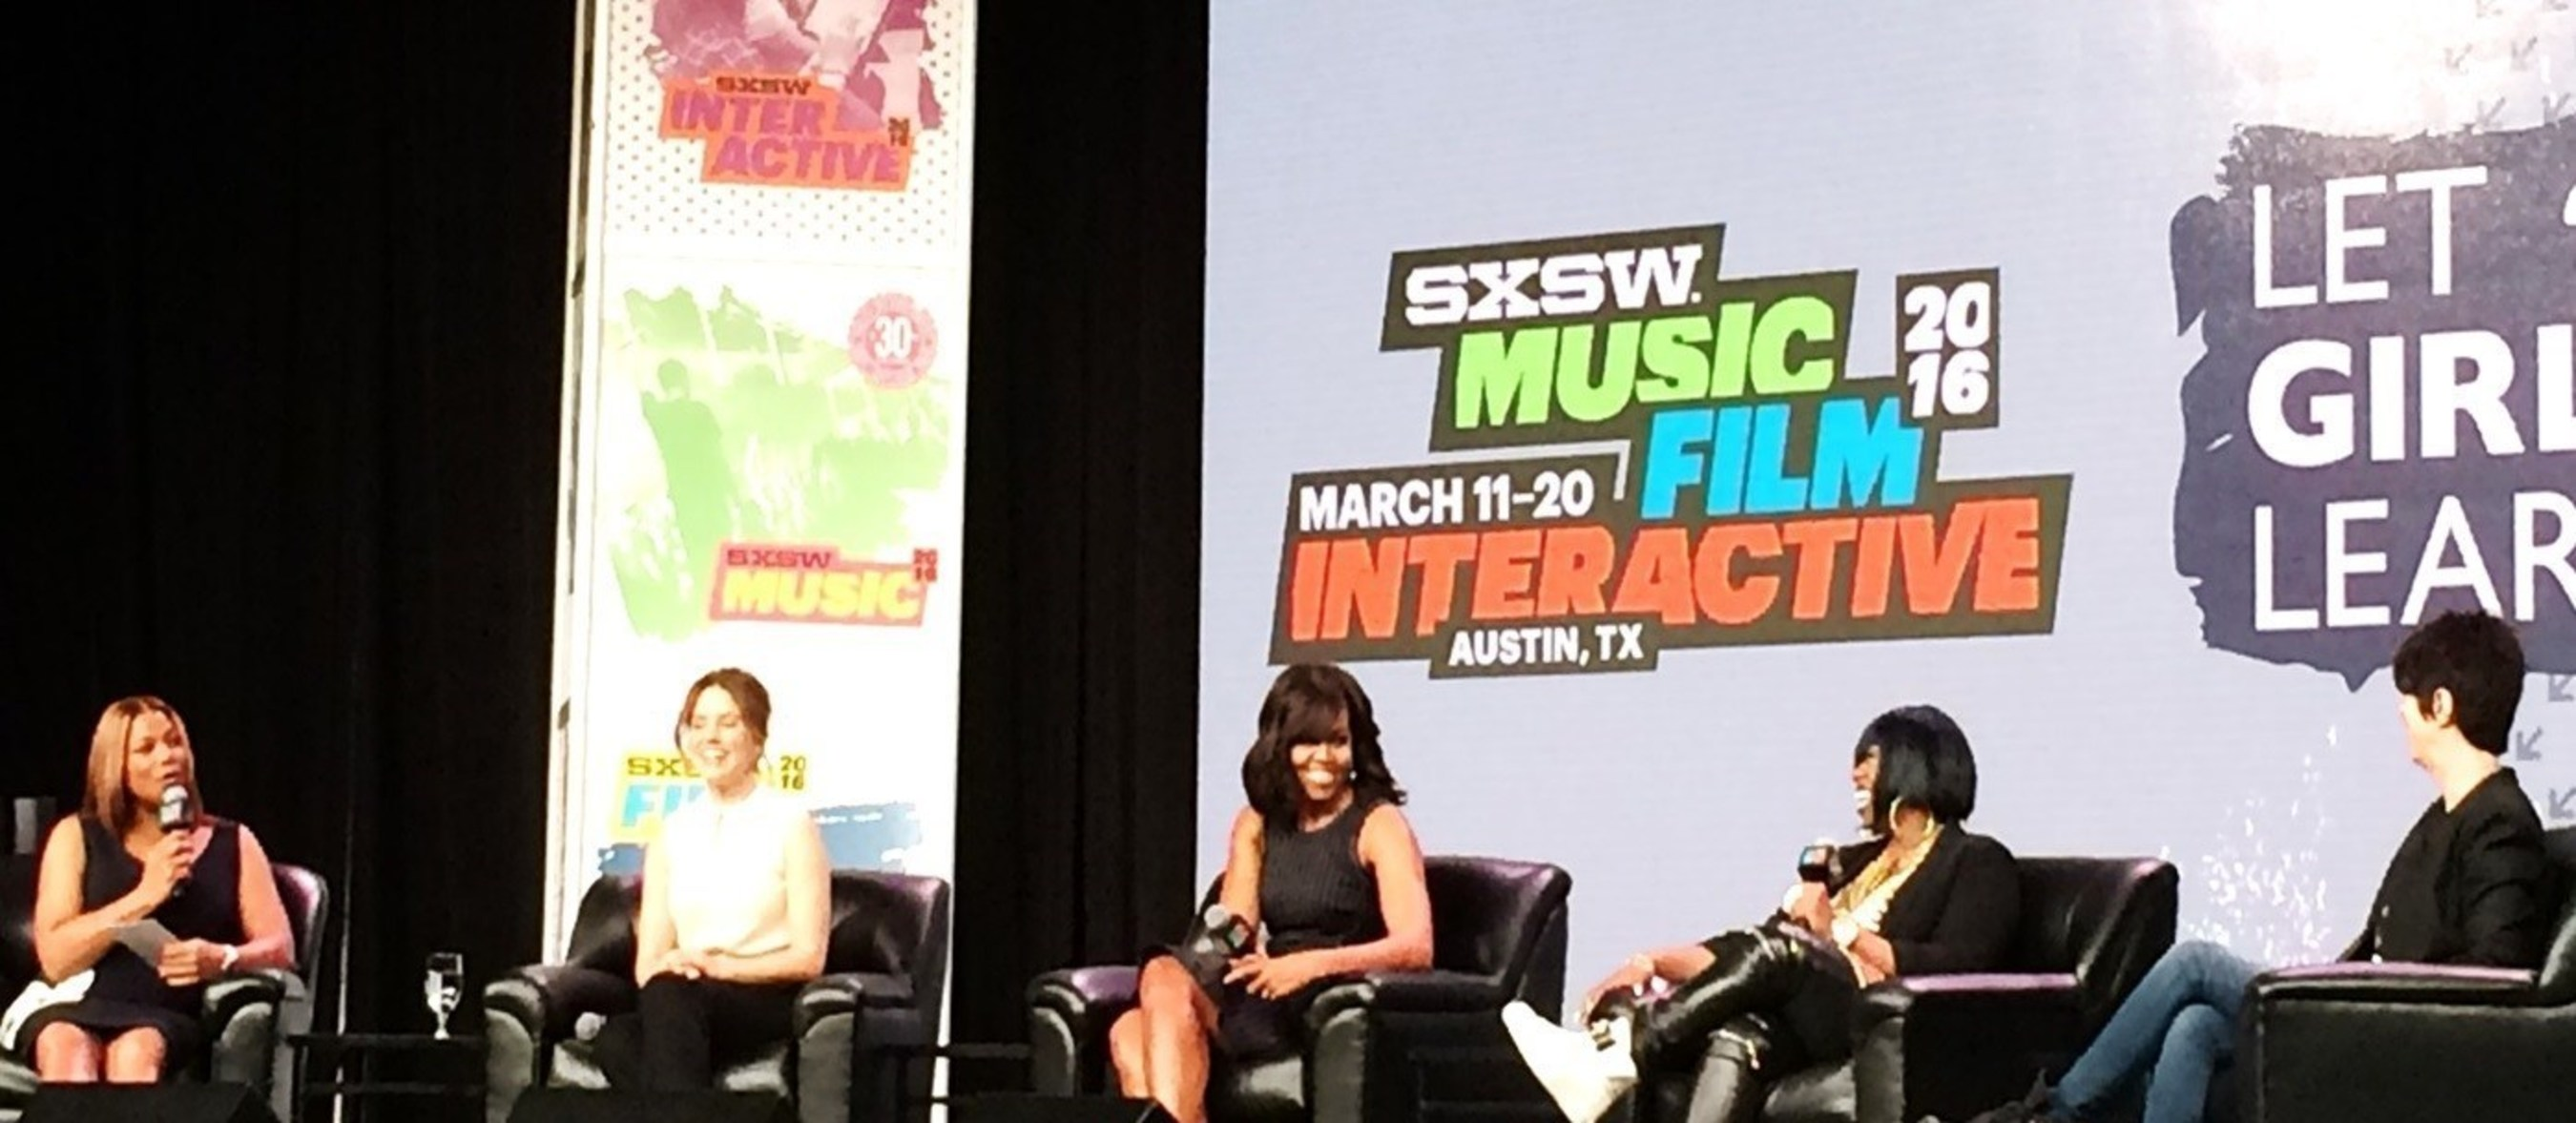 G2A.COM and US President Barack Obama Were Present During South By South West (SXSW) 2016 Festival in Austin, Texas, USA